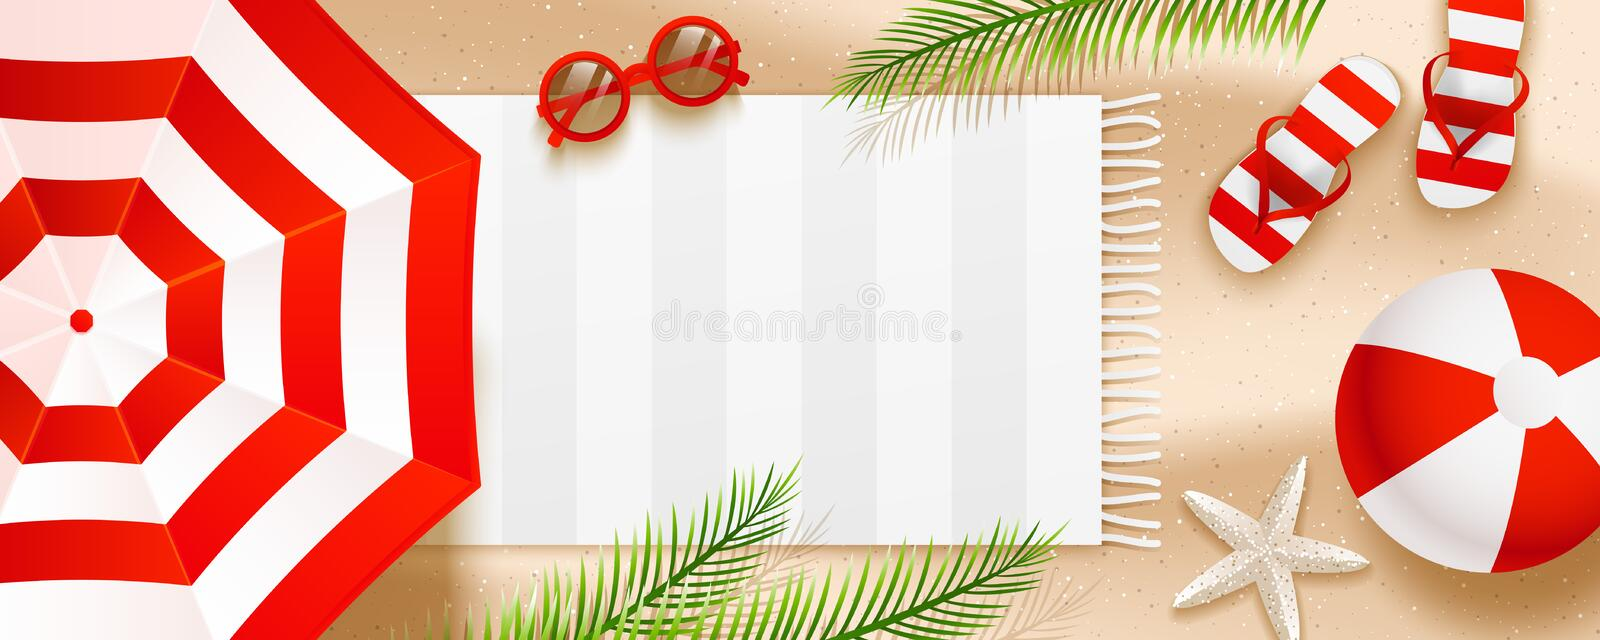 Summer beach horizontal banner with sun umbrellas, flip flops, sunglasses, ball, towel and palm leaves on sand vector illustration